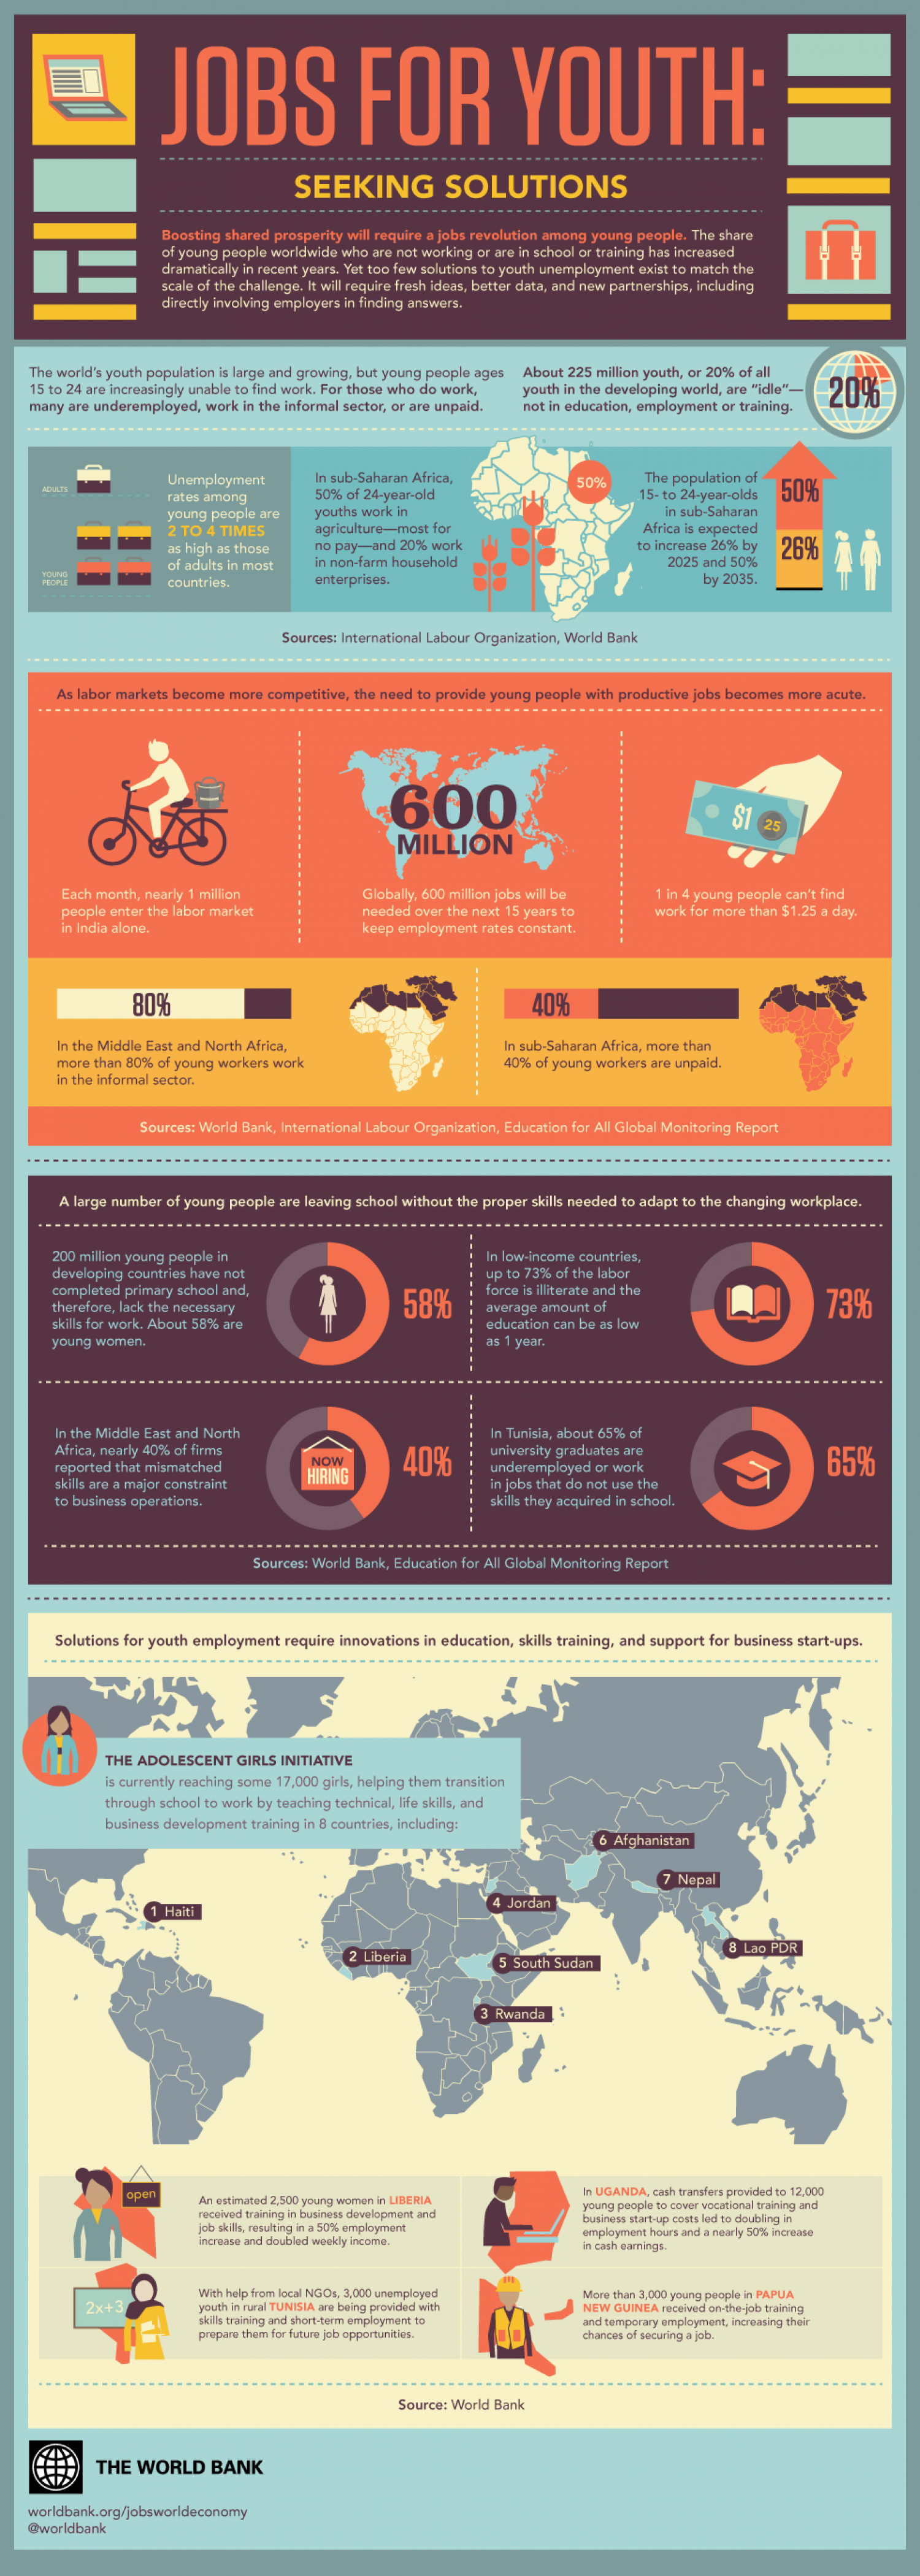 Jobs for Youth Infographic